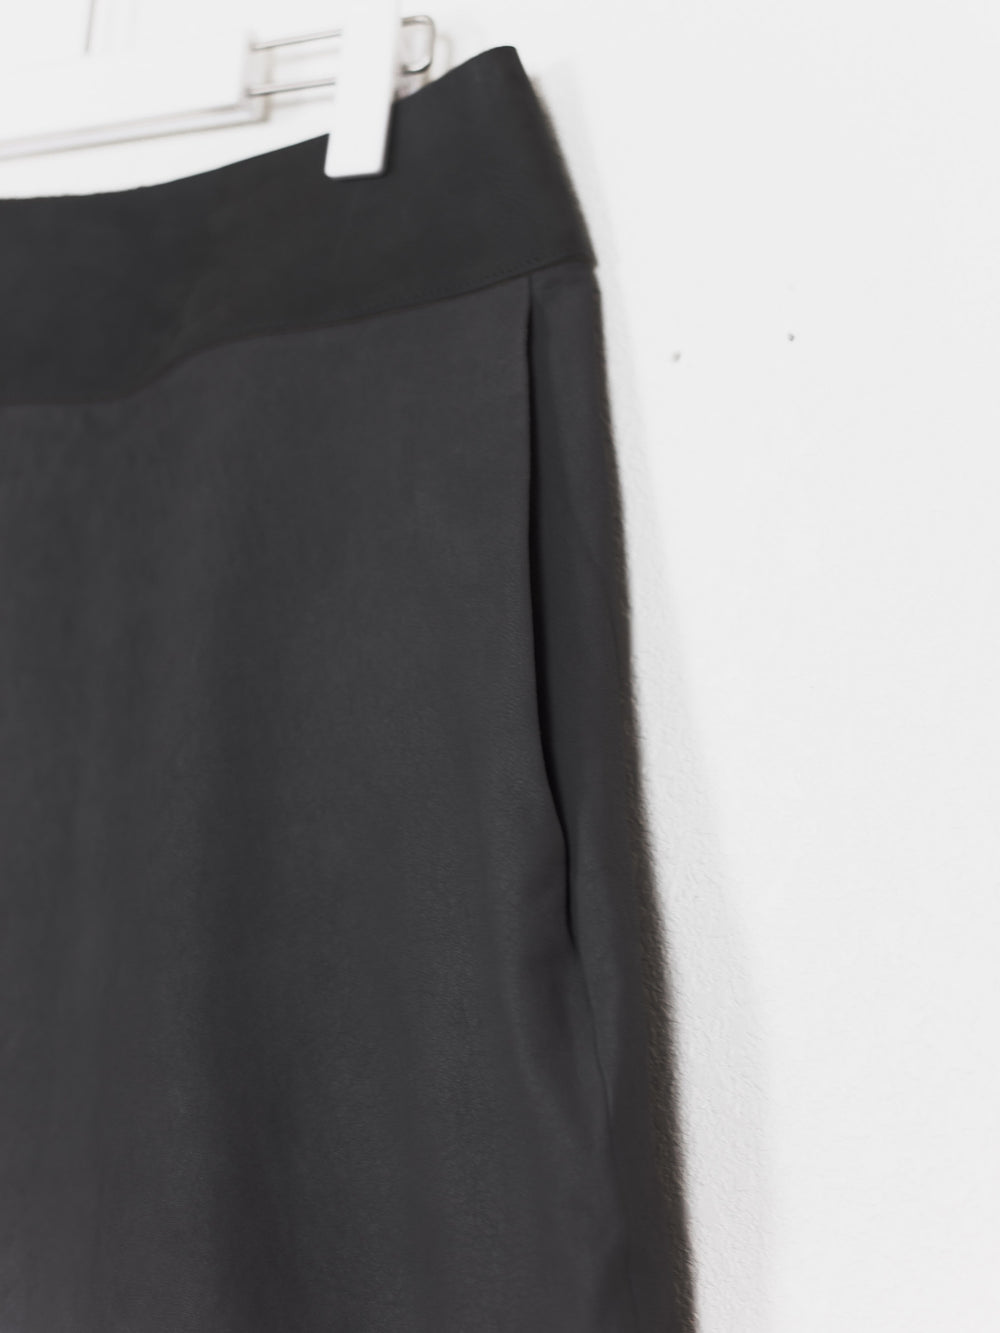 Rick Owens AW10 Leather Slit Skirt